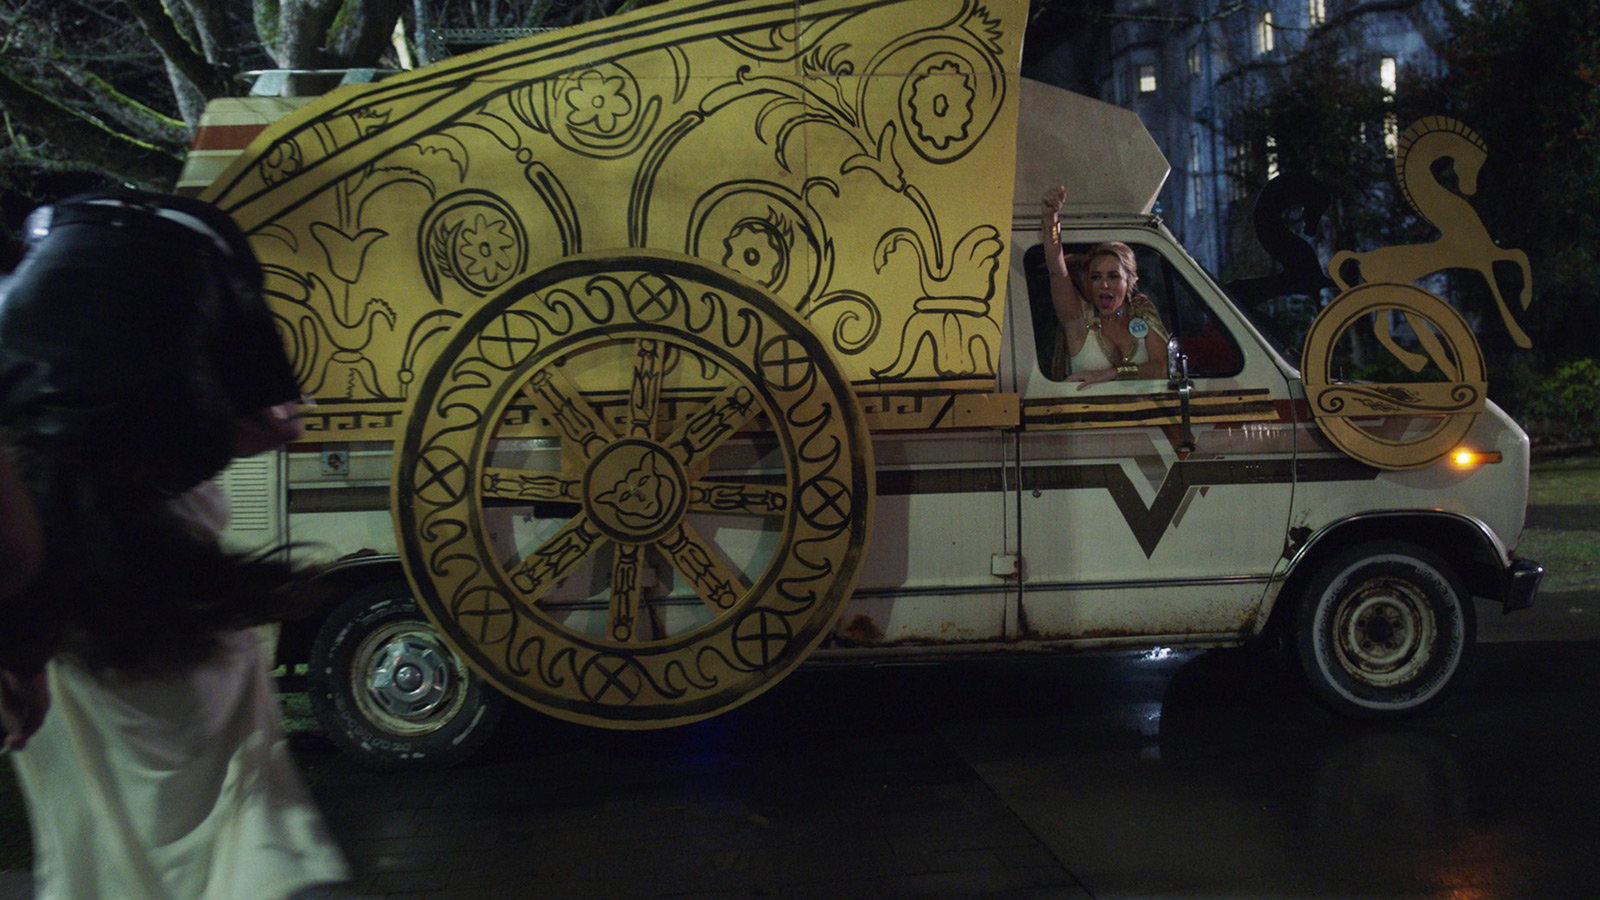 "CHARMED: S1 - UNIVERSITY FRAT ""CHARIOT"" VAN - SCREEN STILL"